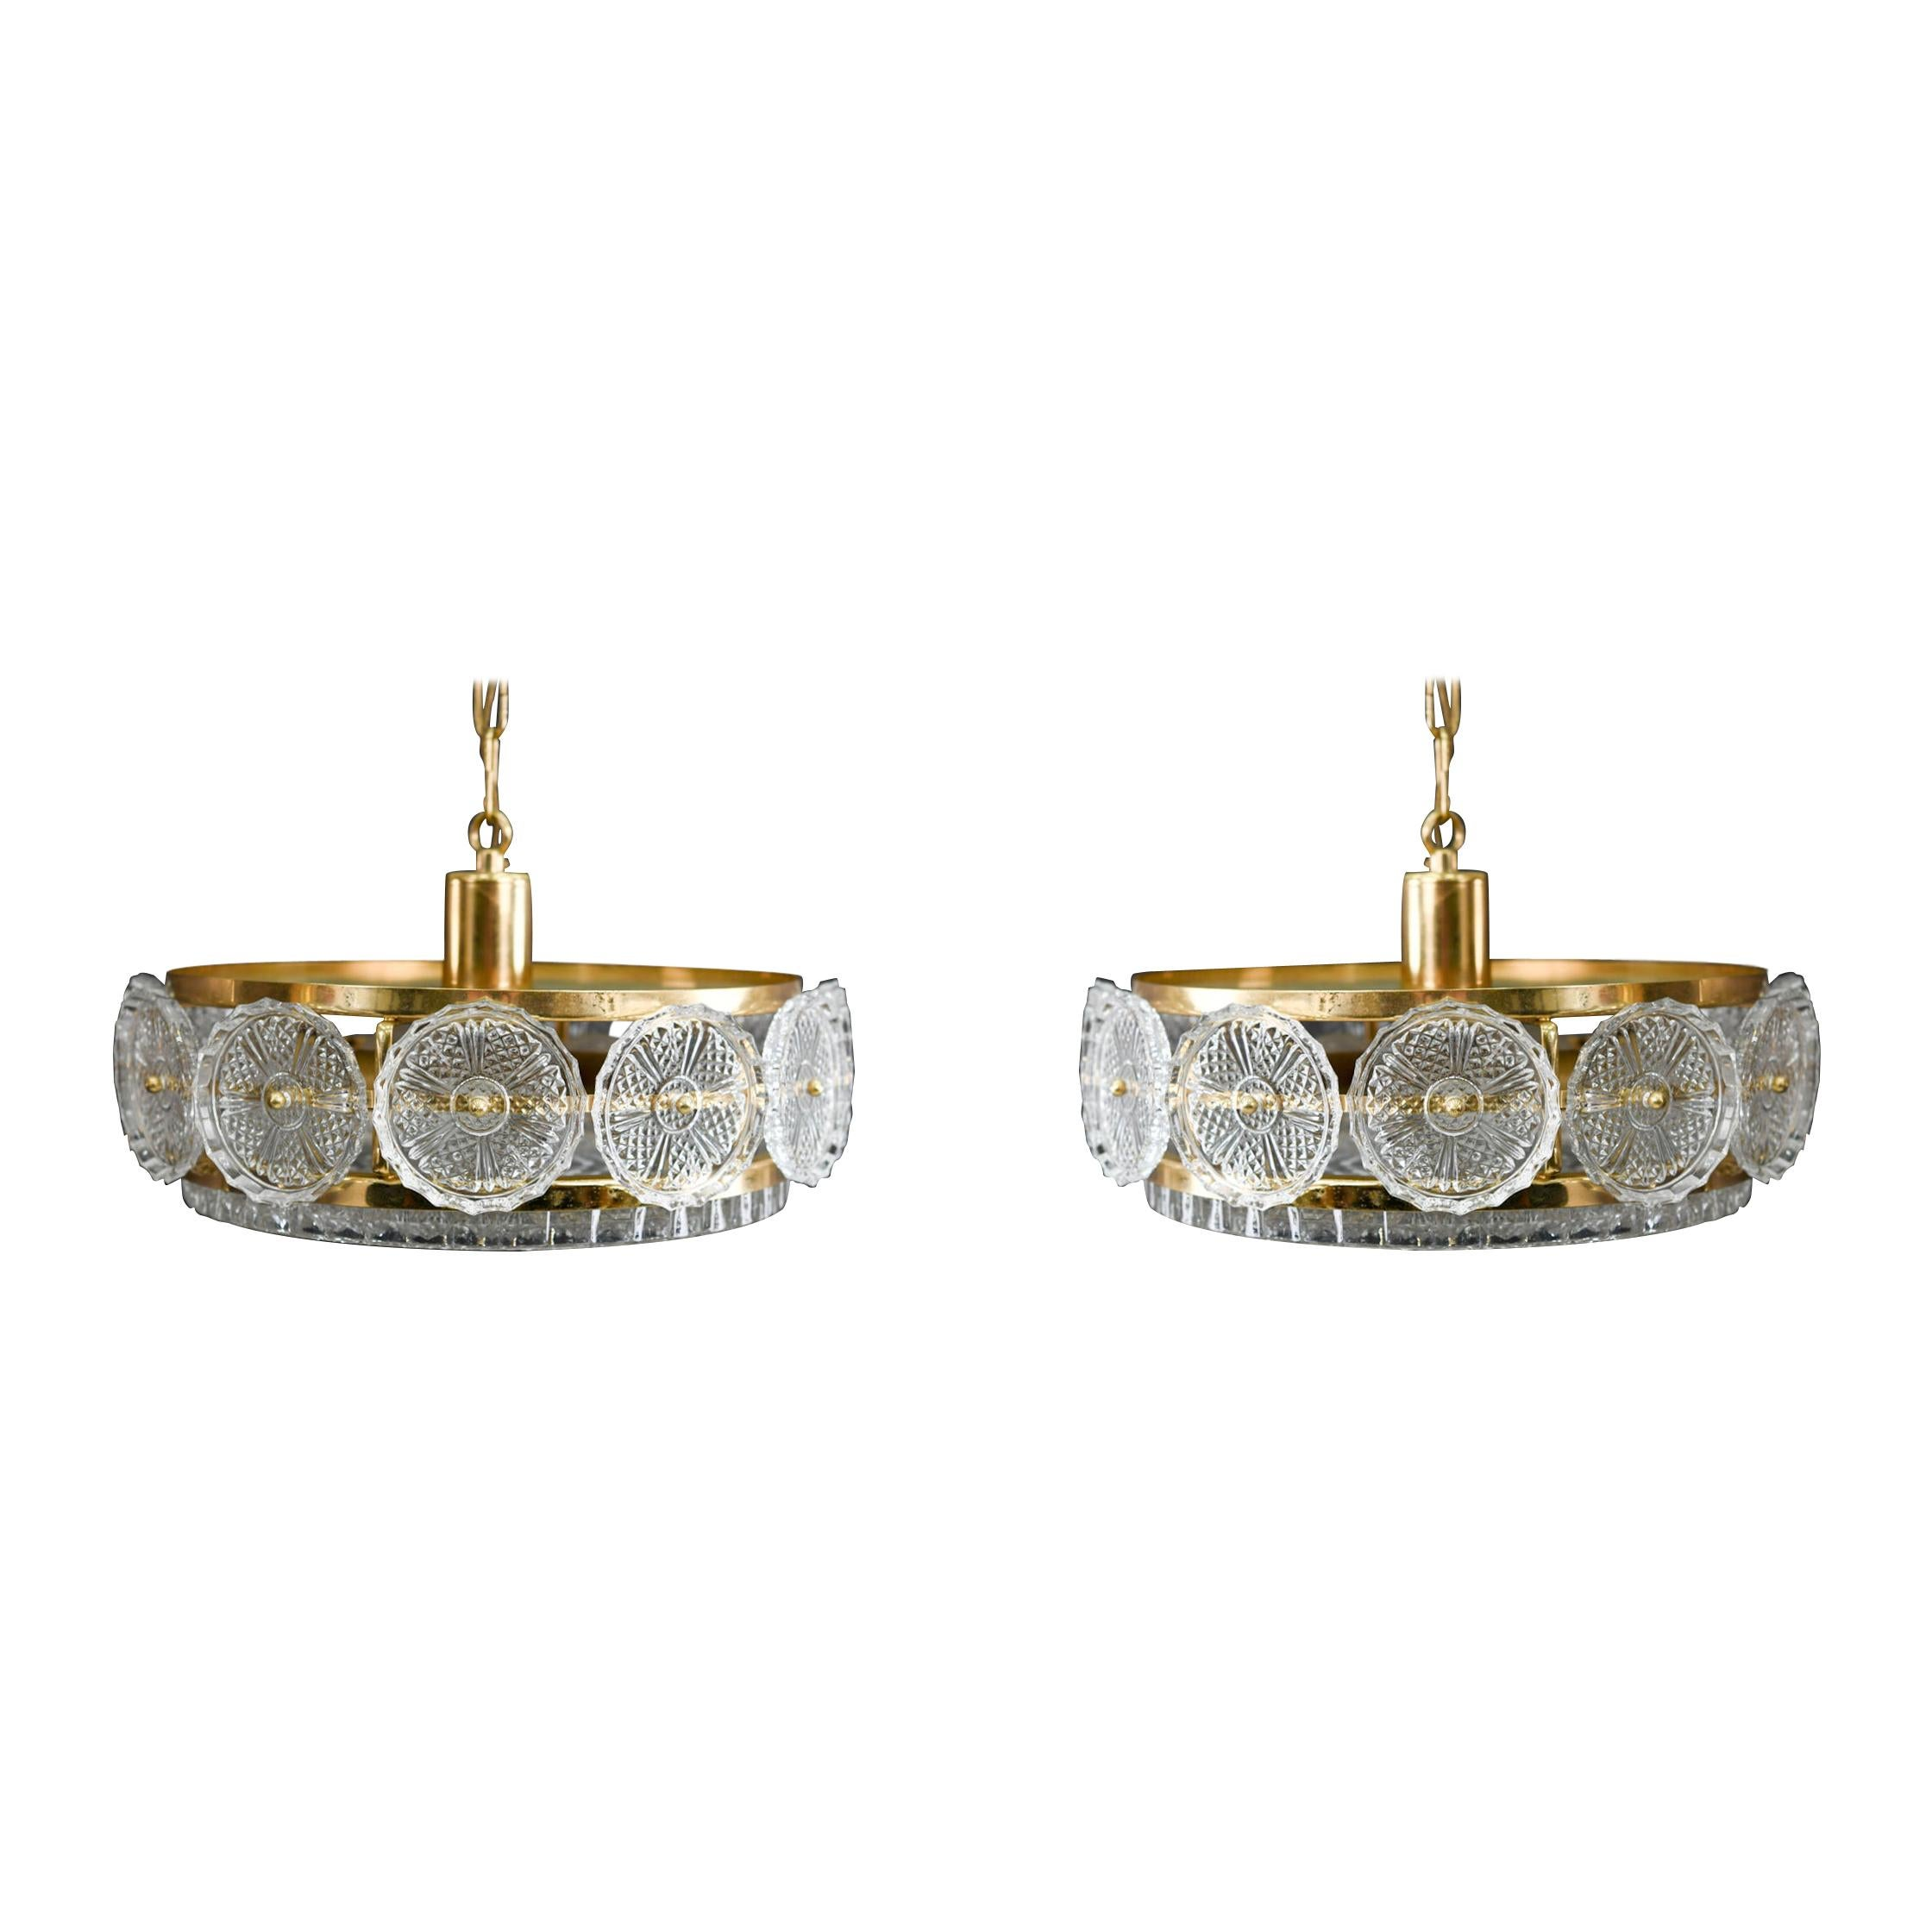 Pair of Carl Fagerlund for Orrefors Chandeliers, circa 1960s